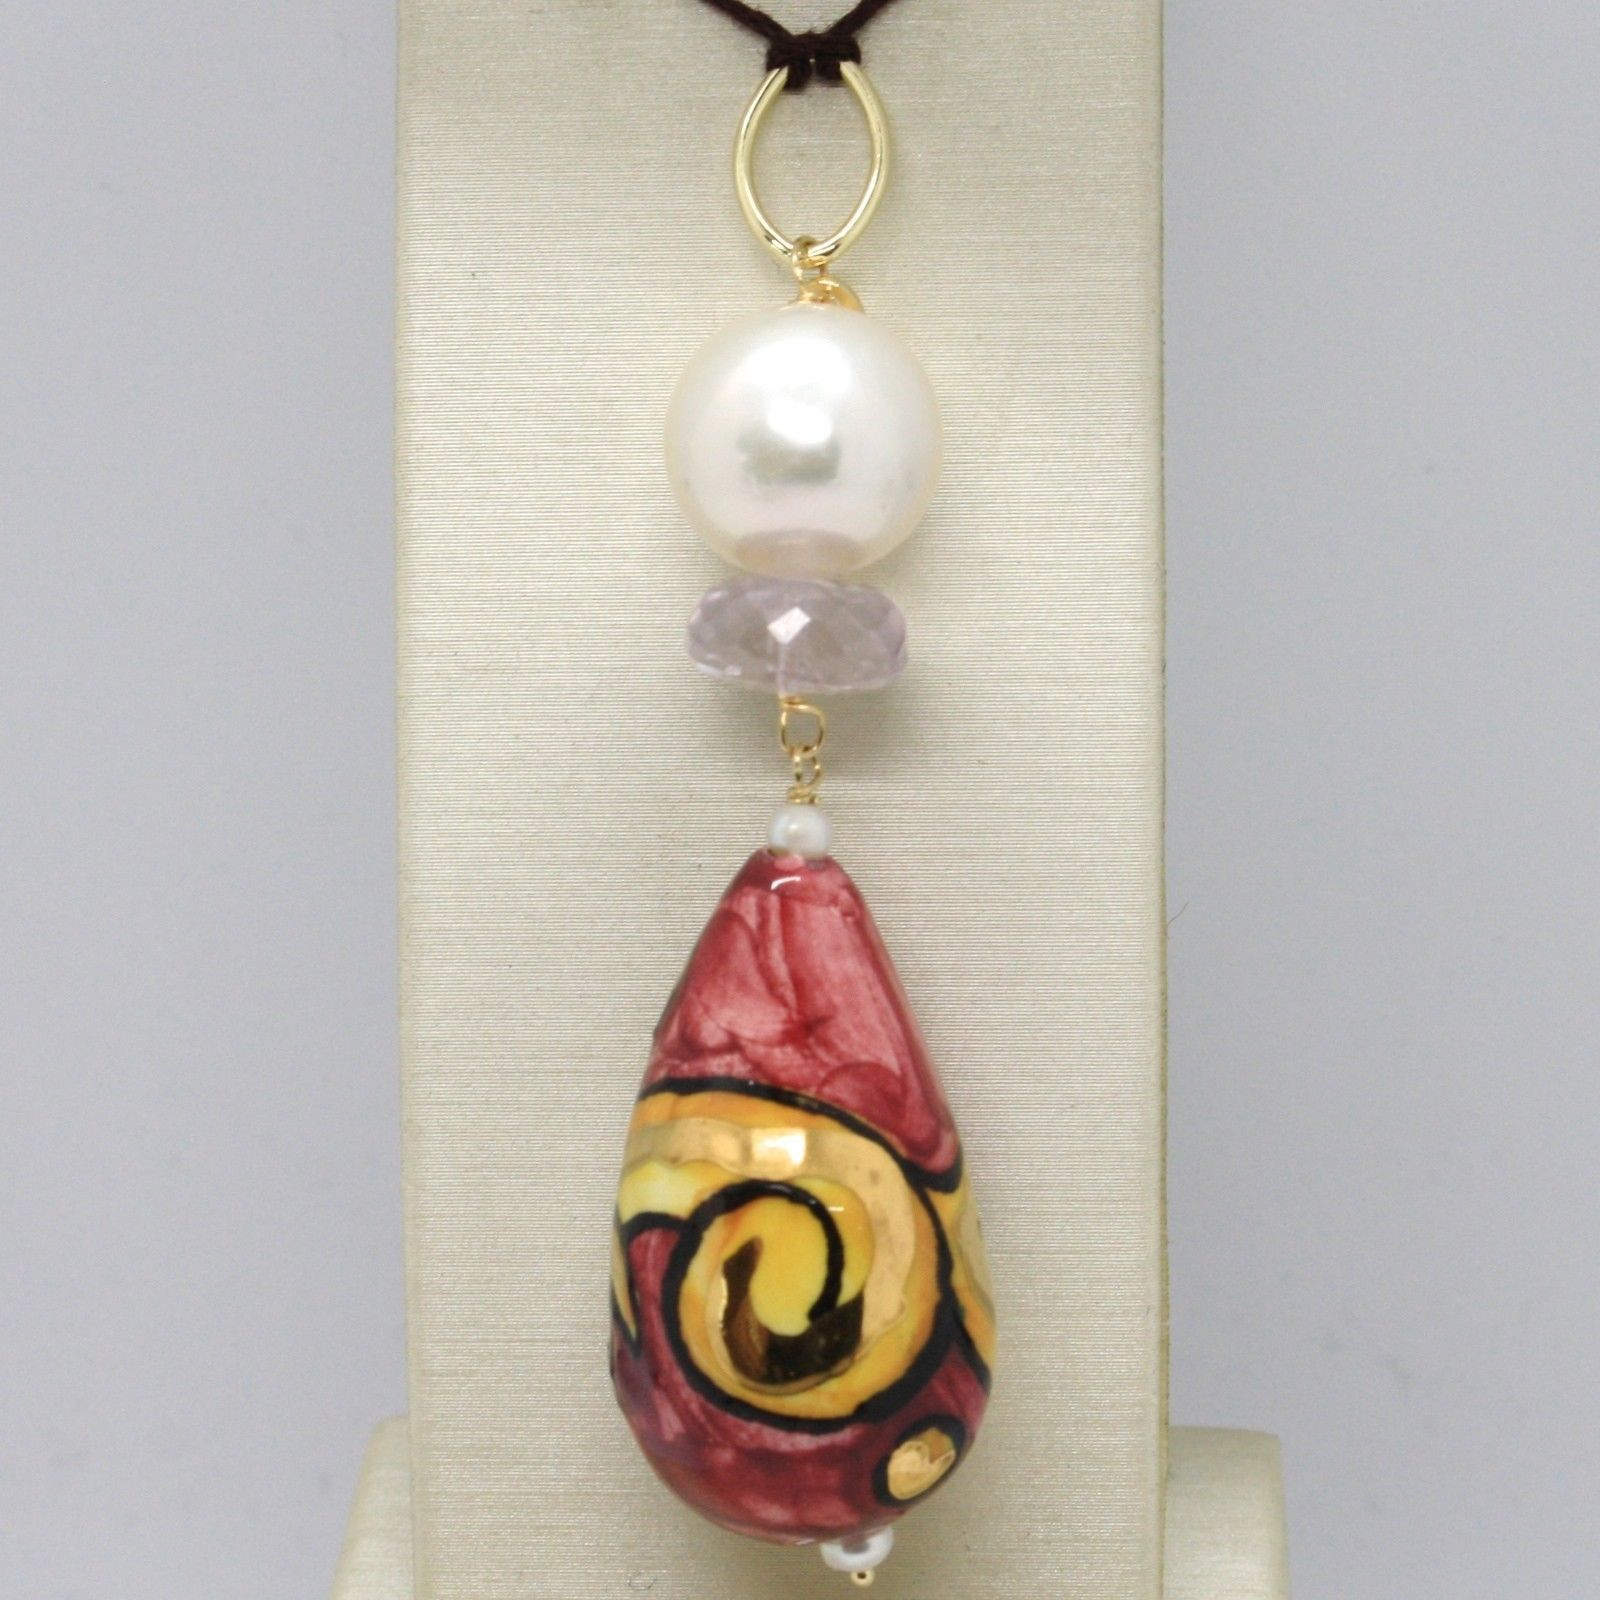 18K YELLOW GOLD PENDANT AMETHYST, PEARL & CERAMIC BIG DROP HAND PAINTED IN ITALY